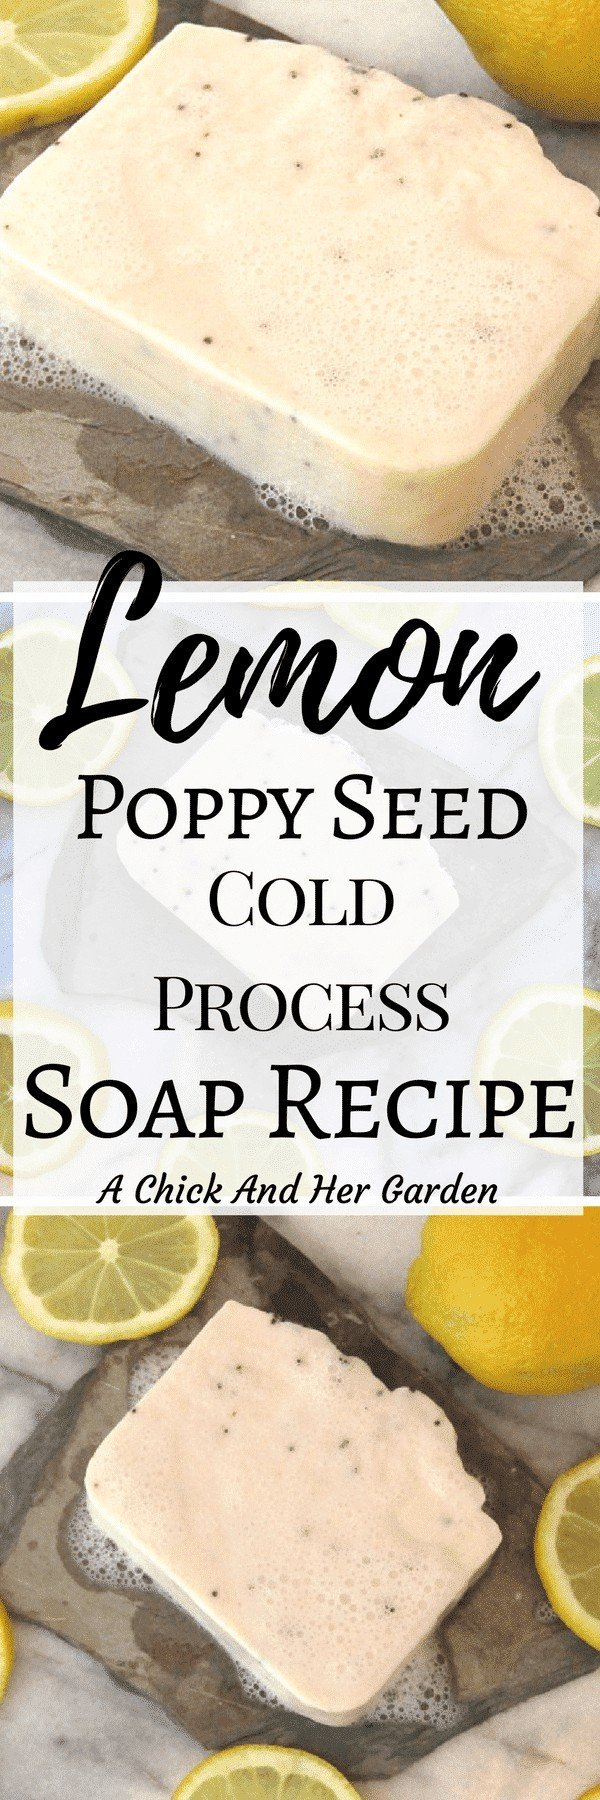 If you're looking for the perfect cold process soap recipe for Spring, this is it! The Lemon Poppy Seed soap recipe turned out so refreshing with a creamy lather and we love it! #coldprocesssoap #lemonsoap #soapmaking #DIY #Springsoap #naturalskincare #naturalsoapmaking #achickandhergarden